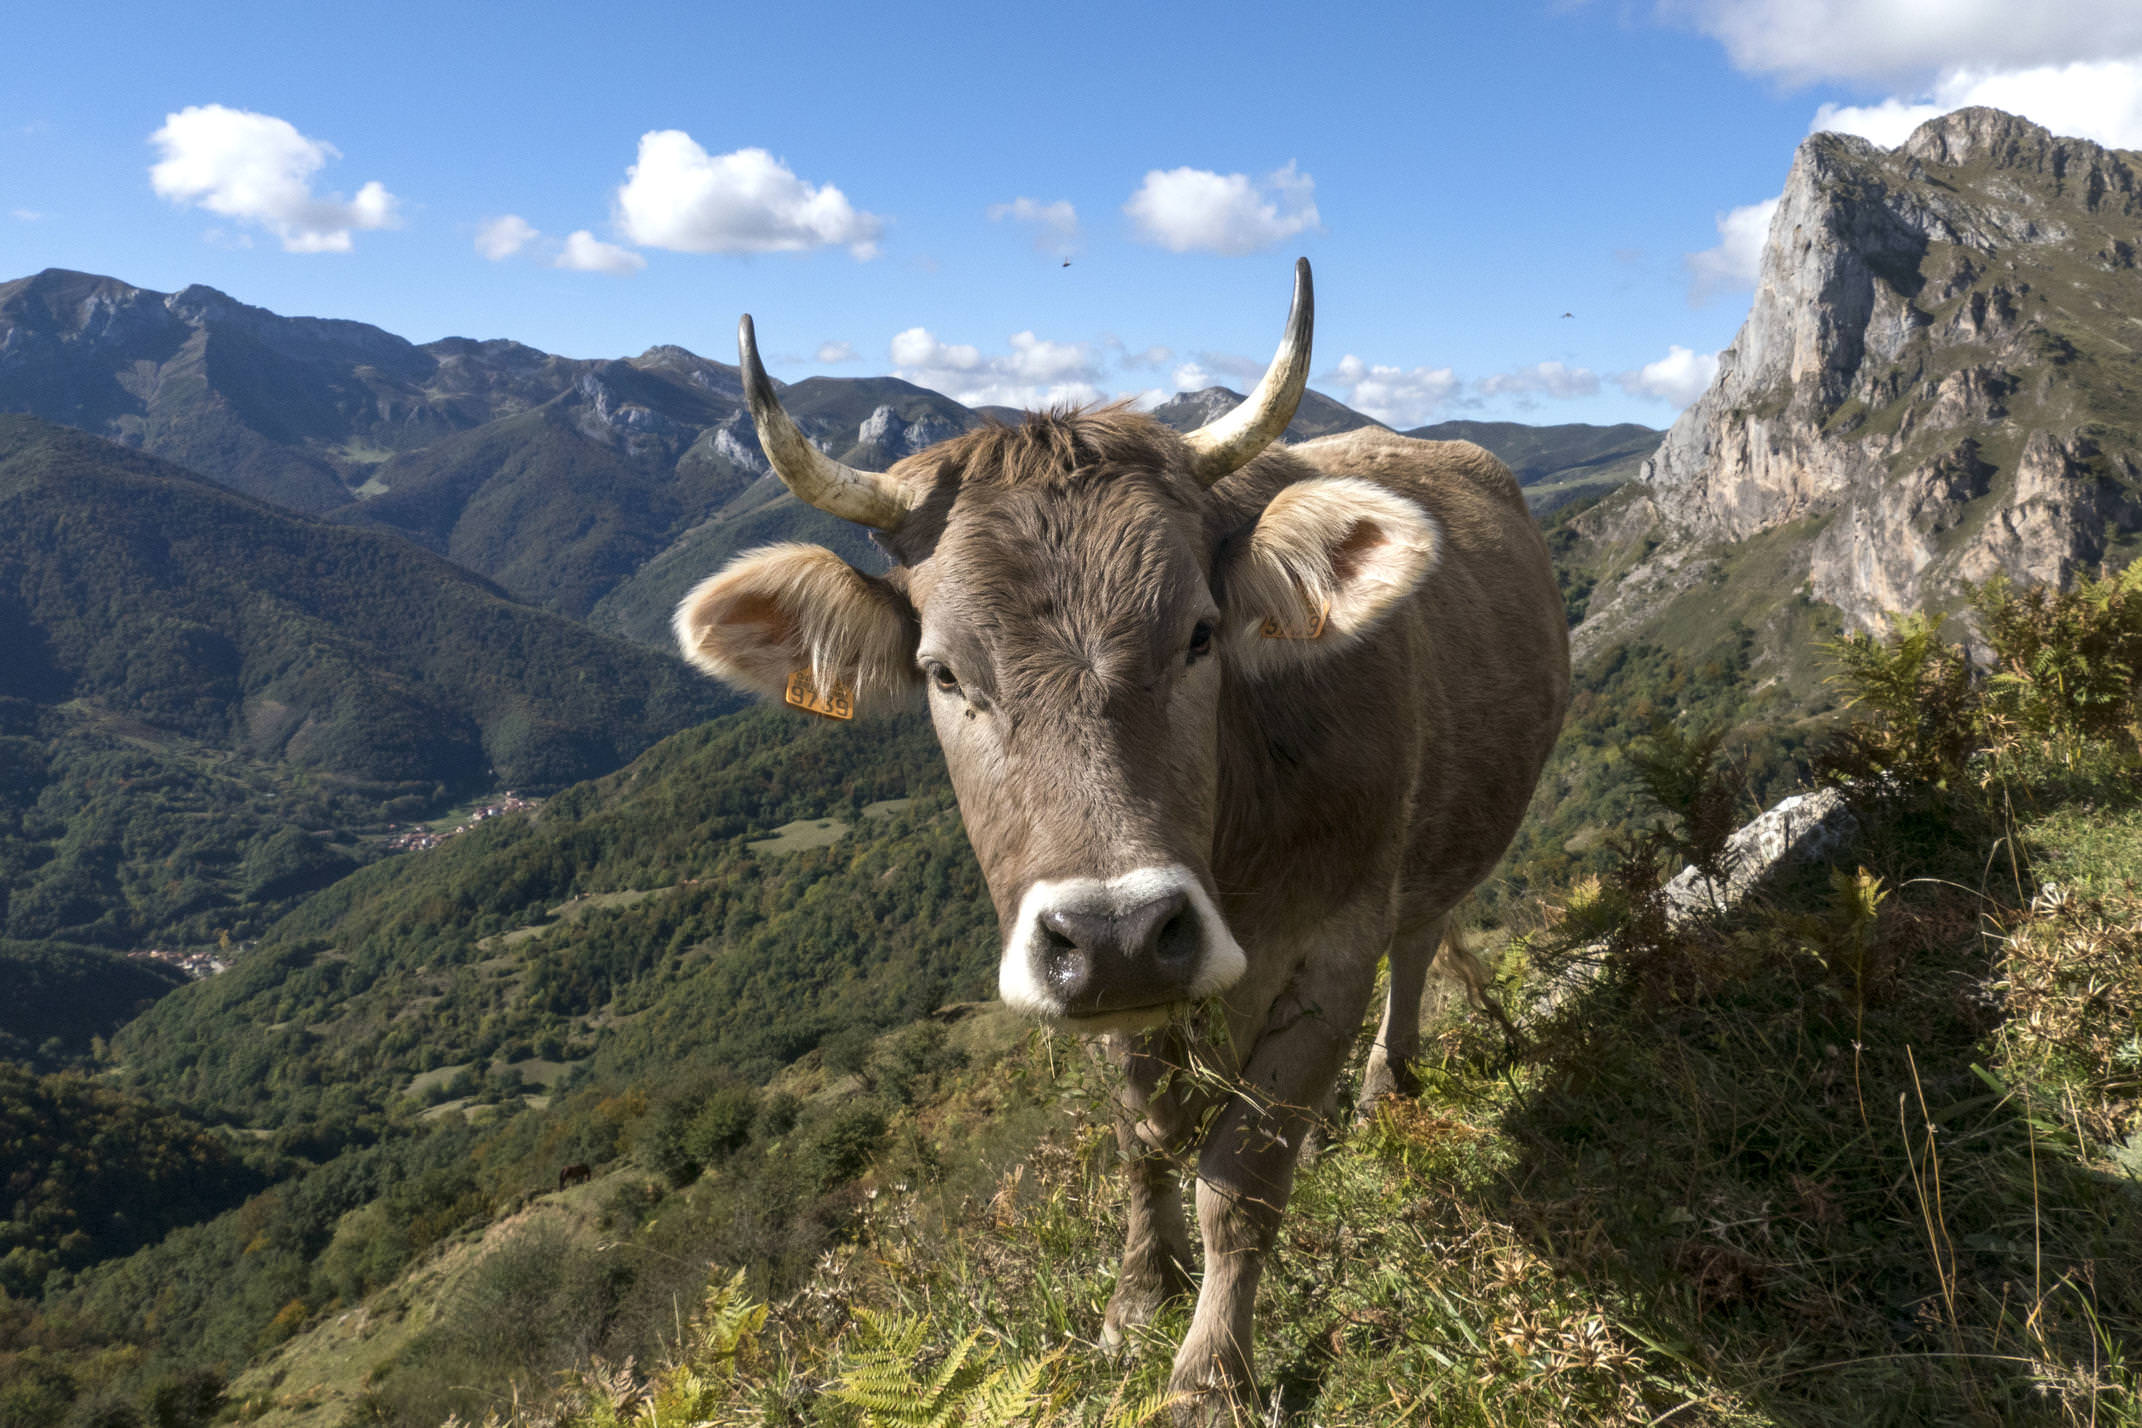 Spain cantabria picos de europa inn to inn day 3 top valdecoro cow